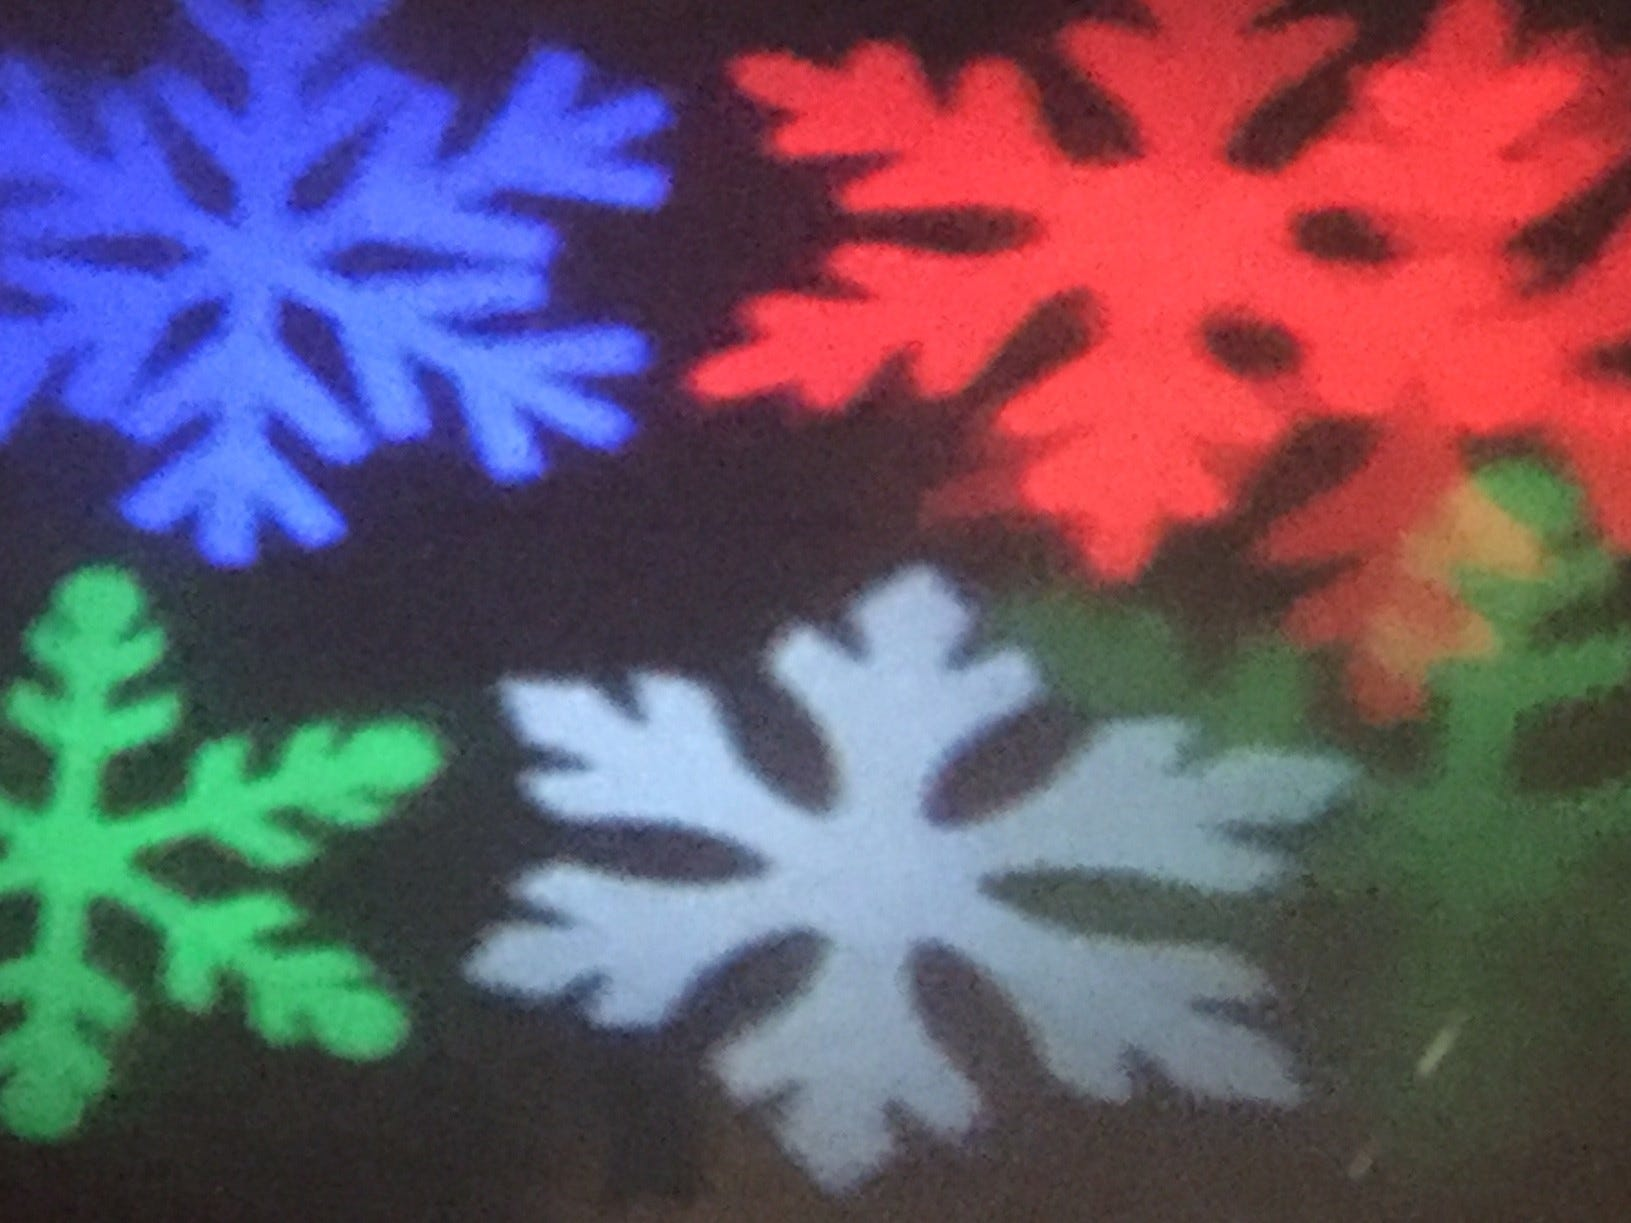 Snowflakes illuminate a wall at G Boys Animation Wonderland at McNaughton's Garden Center in Cherry Hill.